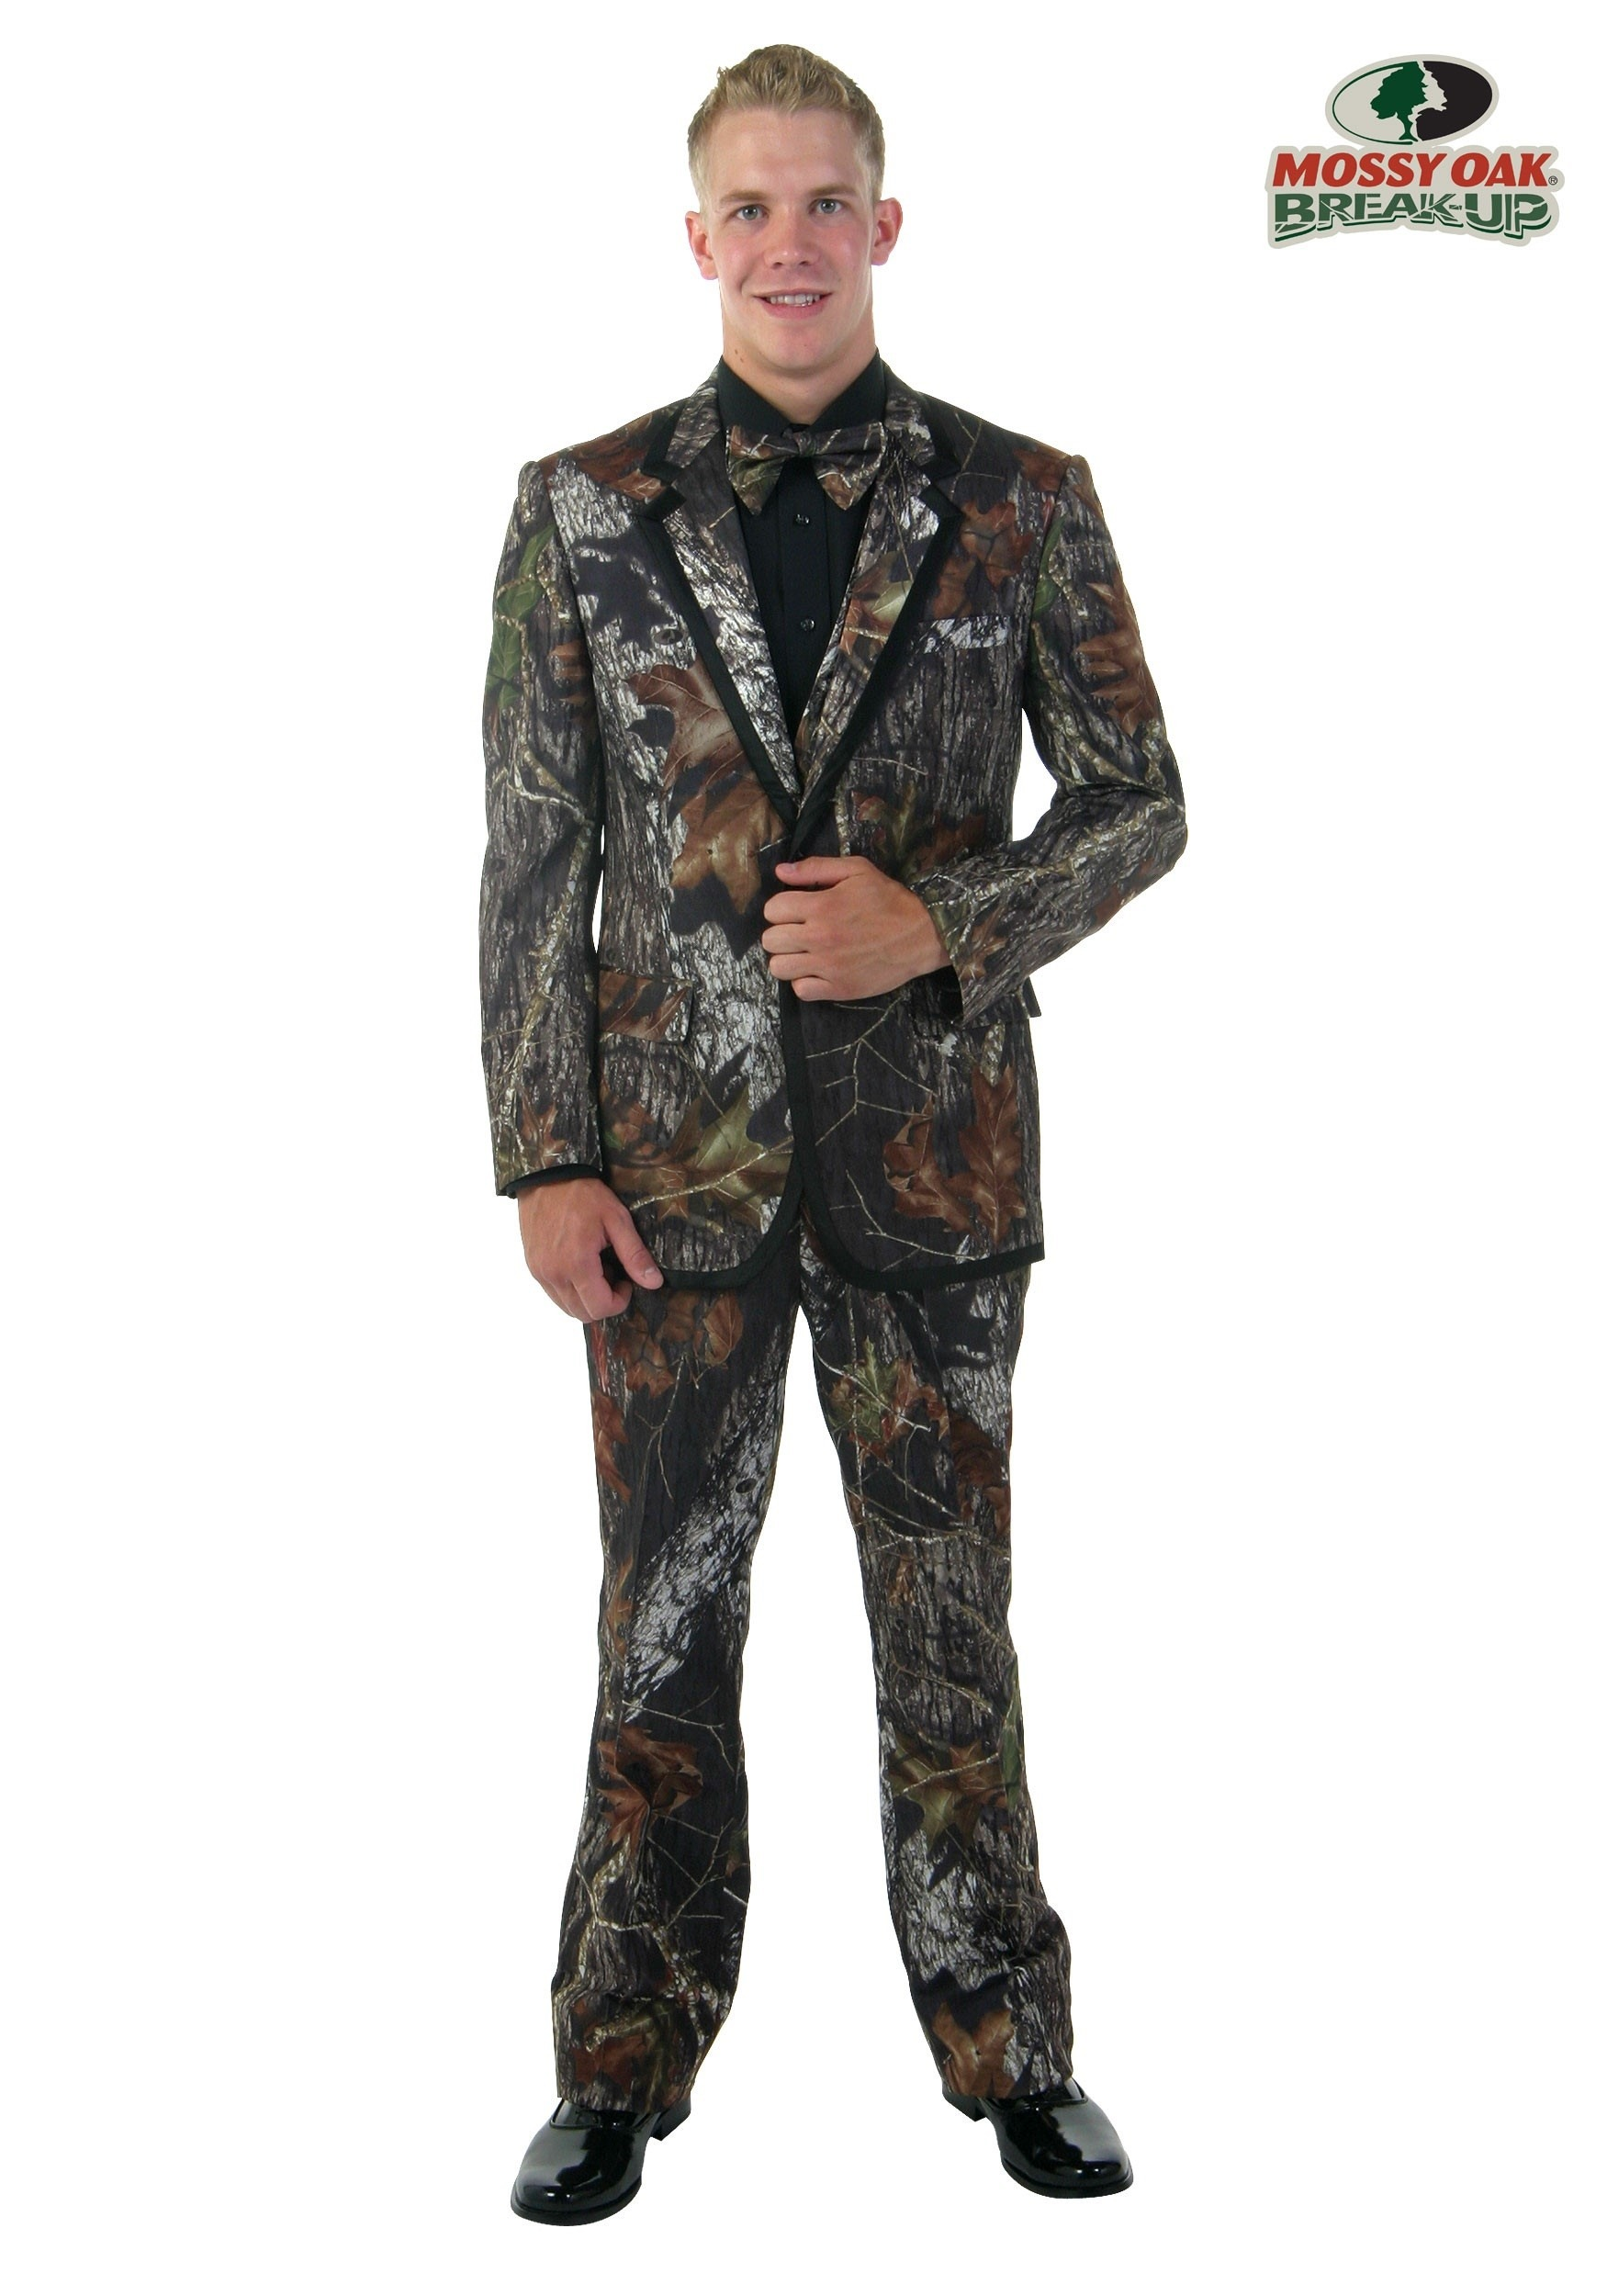 6e6a9570b637b Mossy Oak New Break-Up Alpine Formal Tuxedo